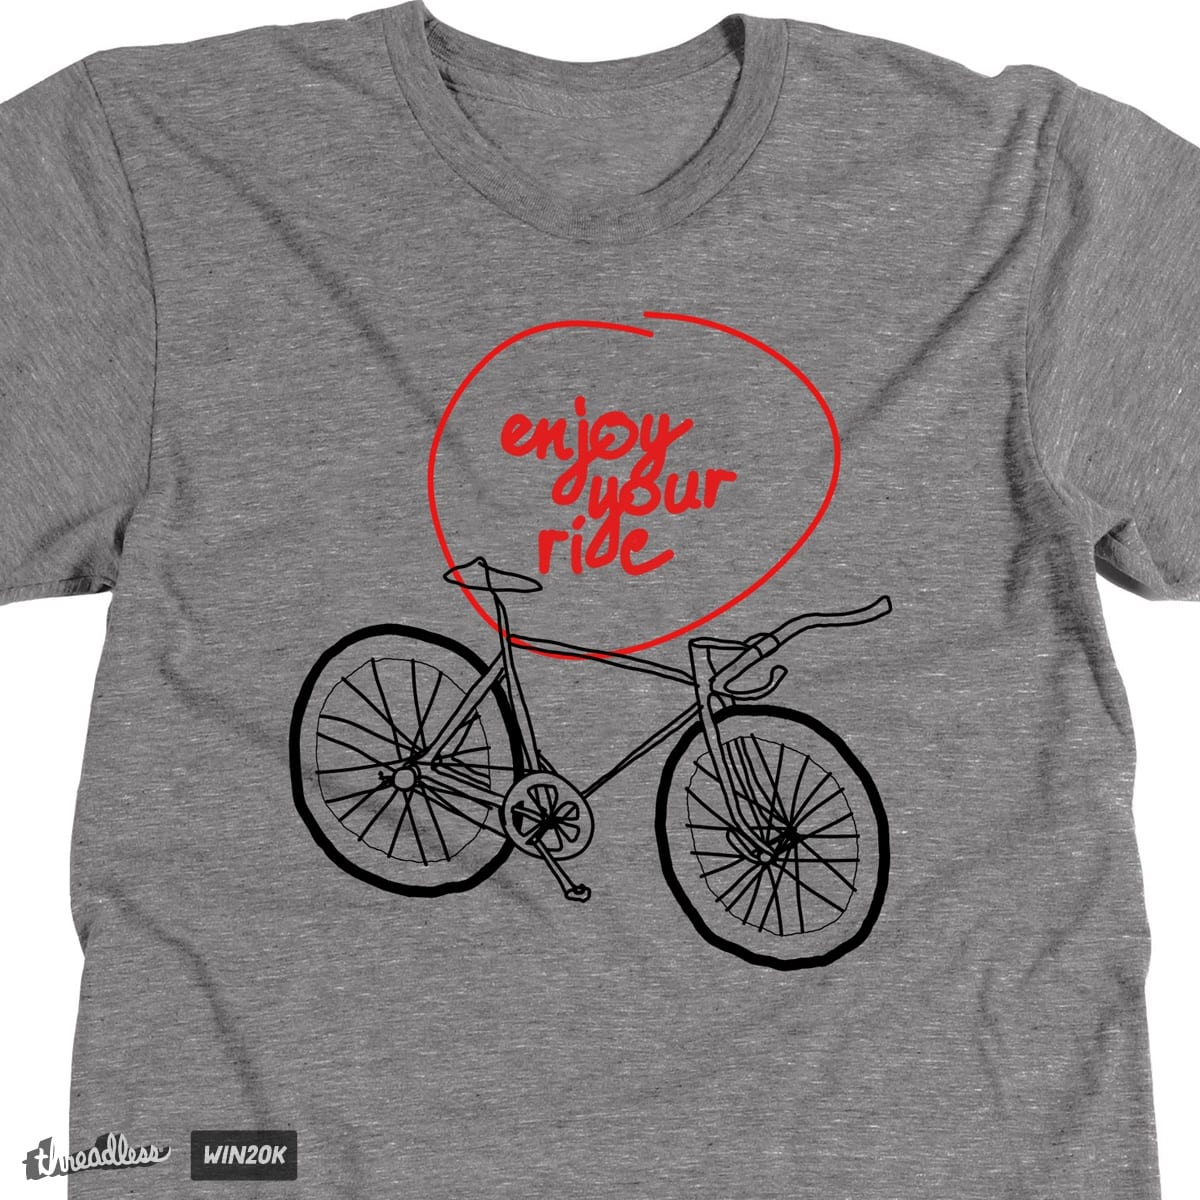 enjoy your ride by steffi_hoedi on Threadless